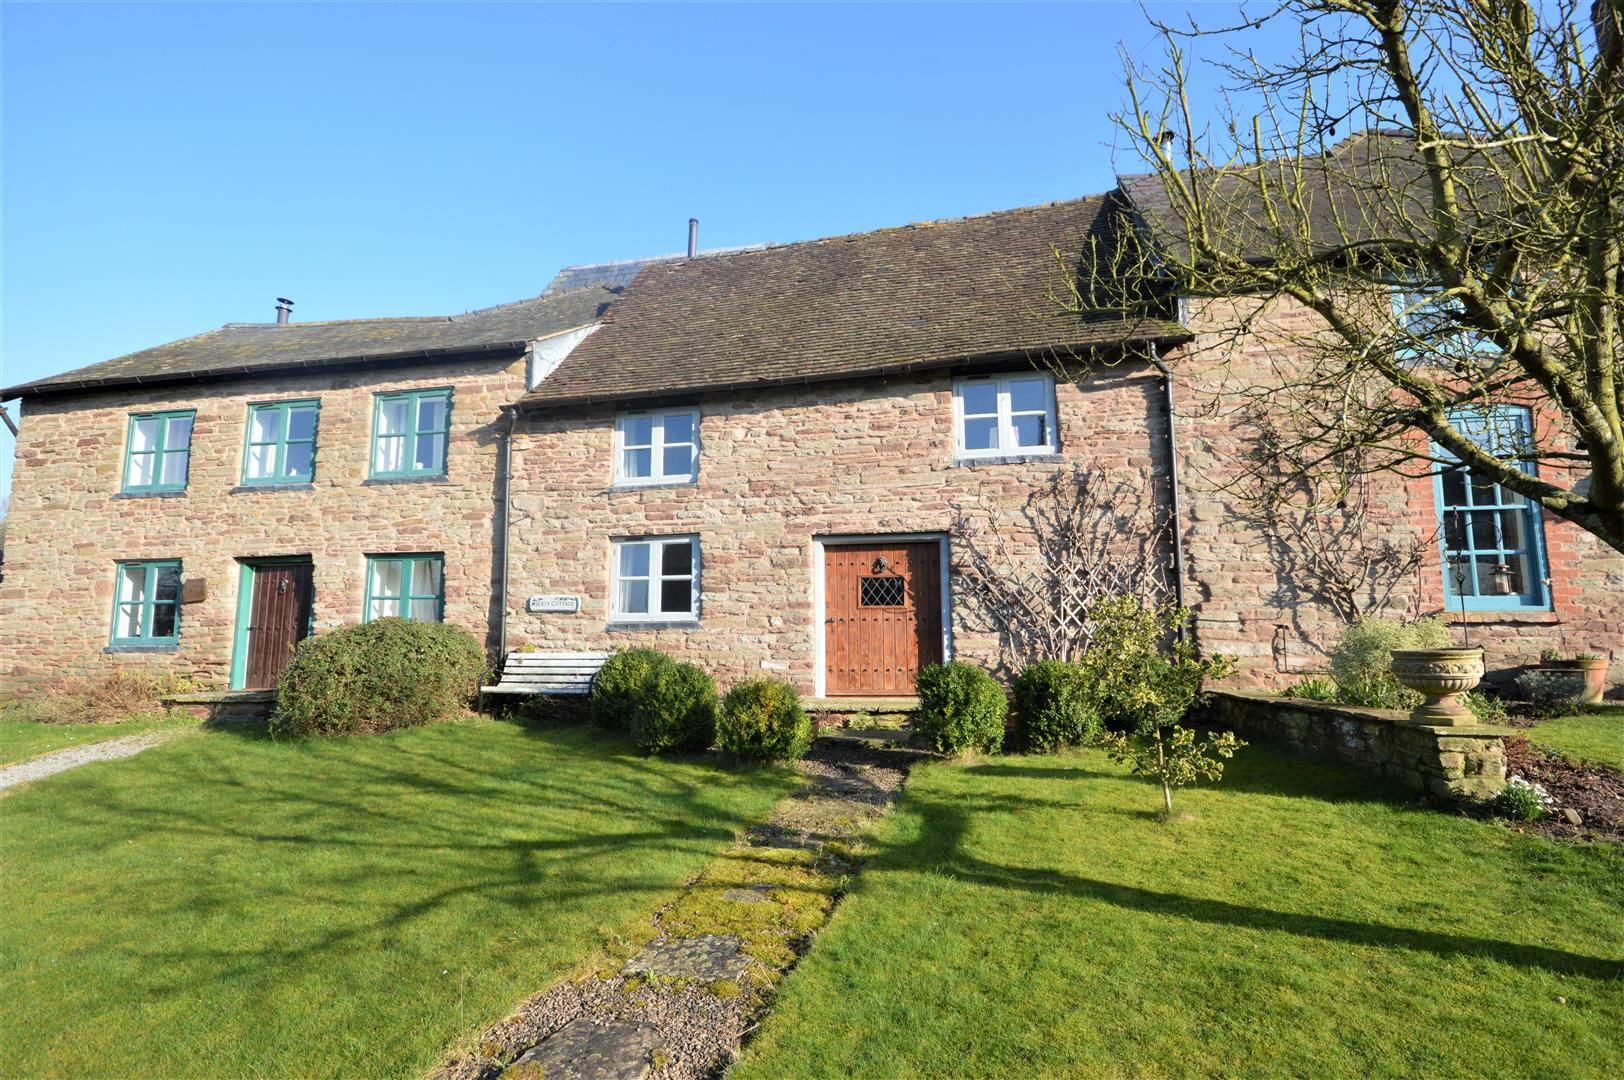 3 bed barn-conversion for sale in Stoke Prior  - Property Image 1